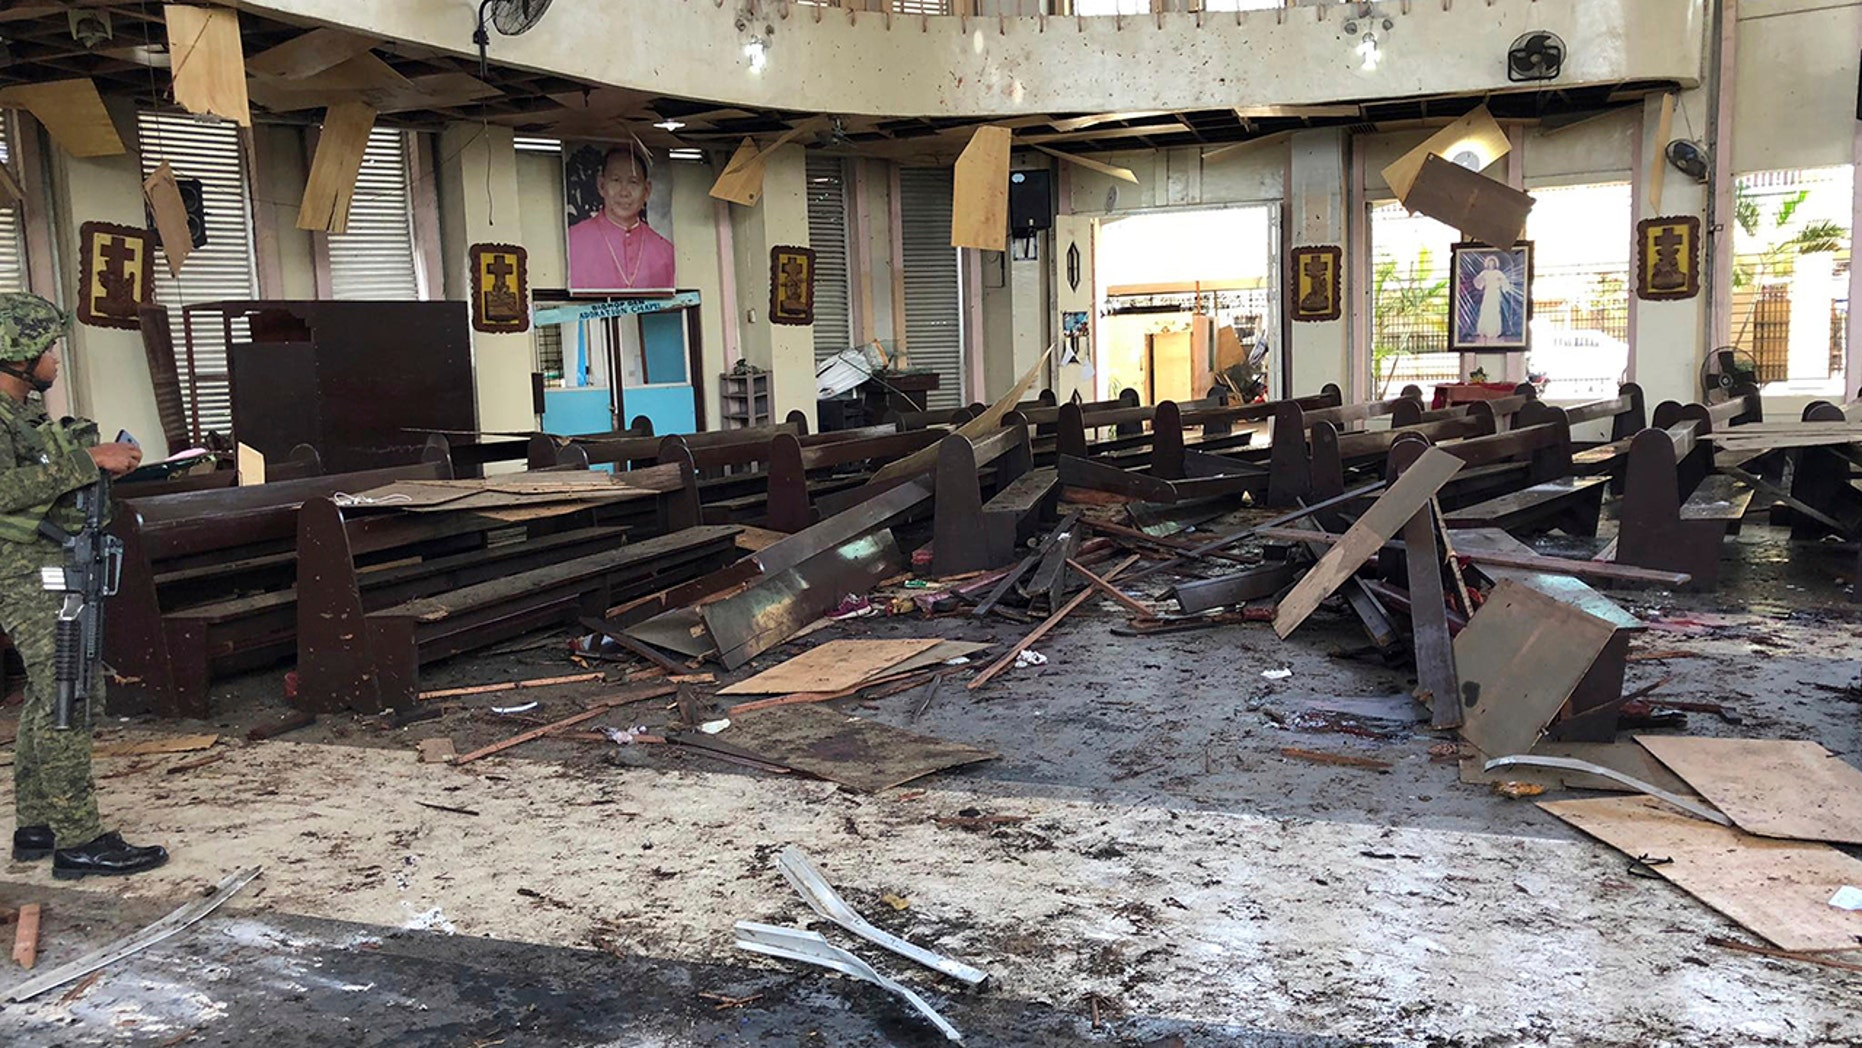 """A soldier looks at the site in a Roman Catholic cathedral in Jolo, the capital of Sulu province in the southern Philippines, after two bombs exploded on Sunday, January 27, 201<div class=""""e3lan e3lan-in-post1""""><script async src=""""//pagead2.googlesyndication.com/pagead/js/adsbygoogle.js""""></script> <!-- Text_Display_Responsive --> <ins class=""""adsbygoogle""""      style=""""display:block""""      data-ad-client=""""ca-pub-6192903739091894""""      data-ad-slot=""""3136787391""""      data-ad-format=""""auto""""      data-full-width-responsive=""""true""""></ins> <script> (adsbygoogle = window.adsbygoogle    []).push({}); </script></div>9. (WESMINCOM Philippines Armed Forces Over AP)"""